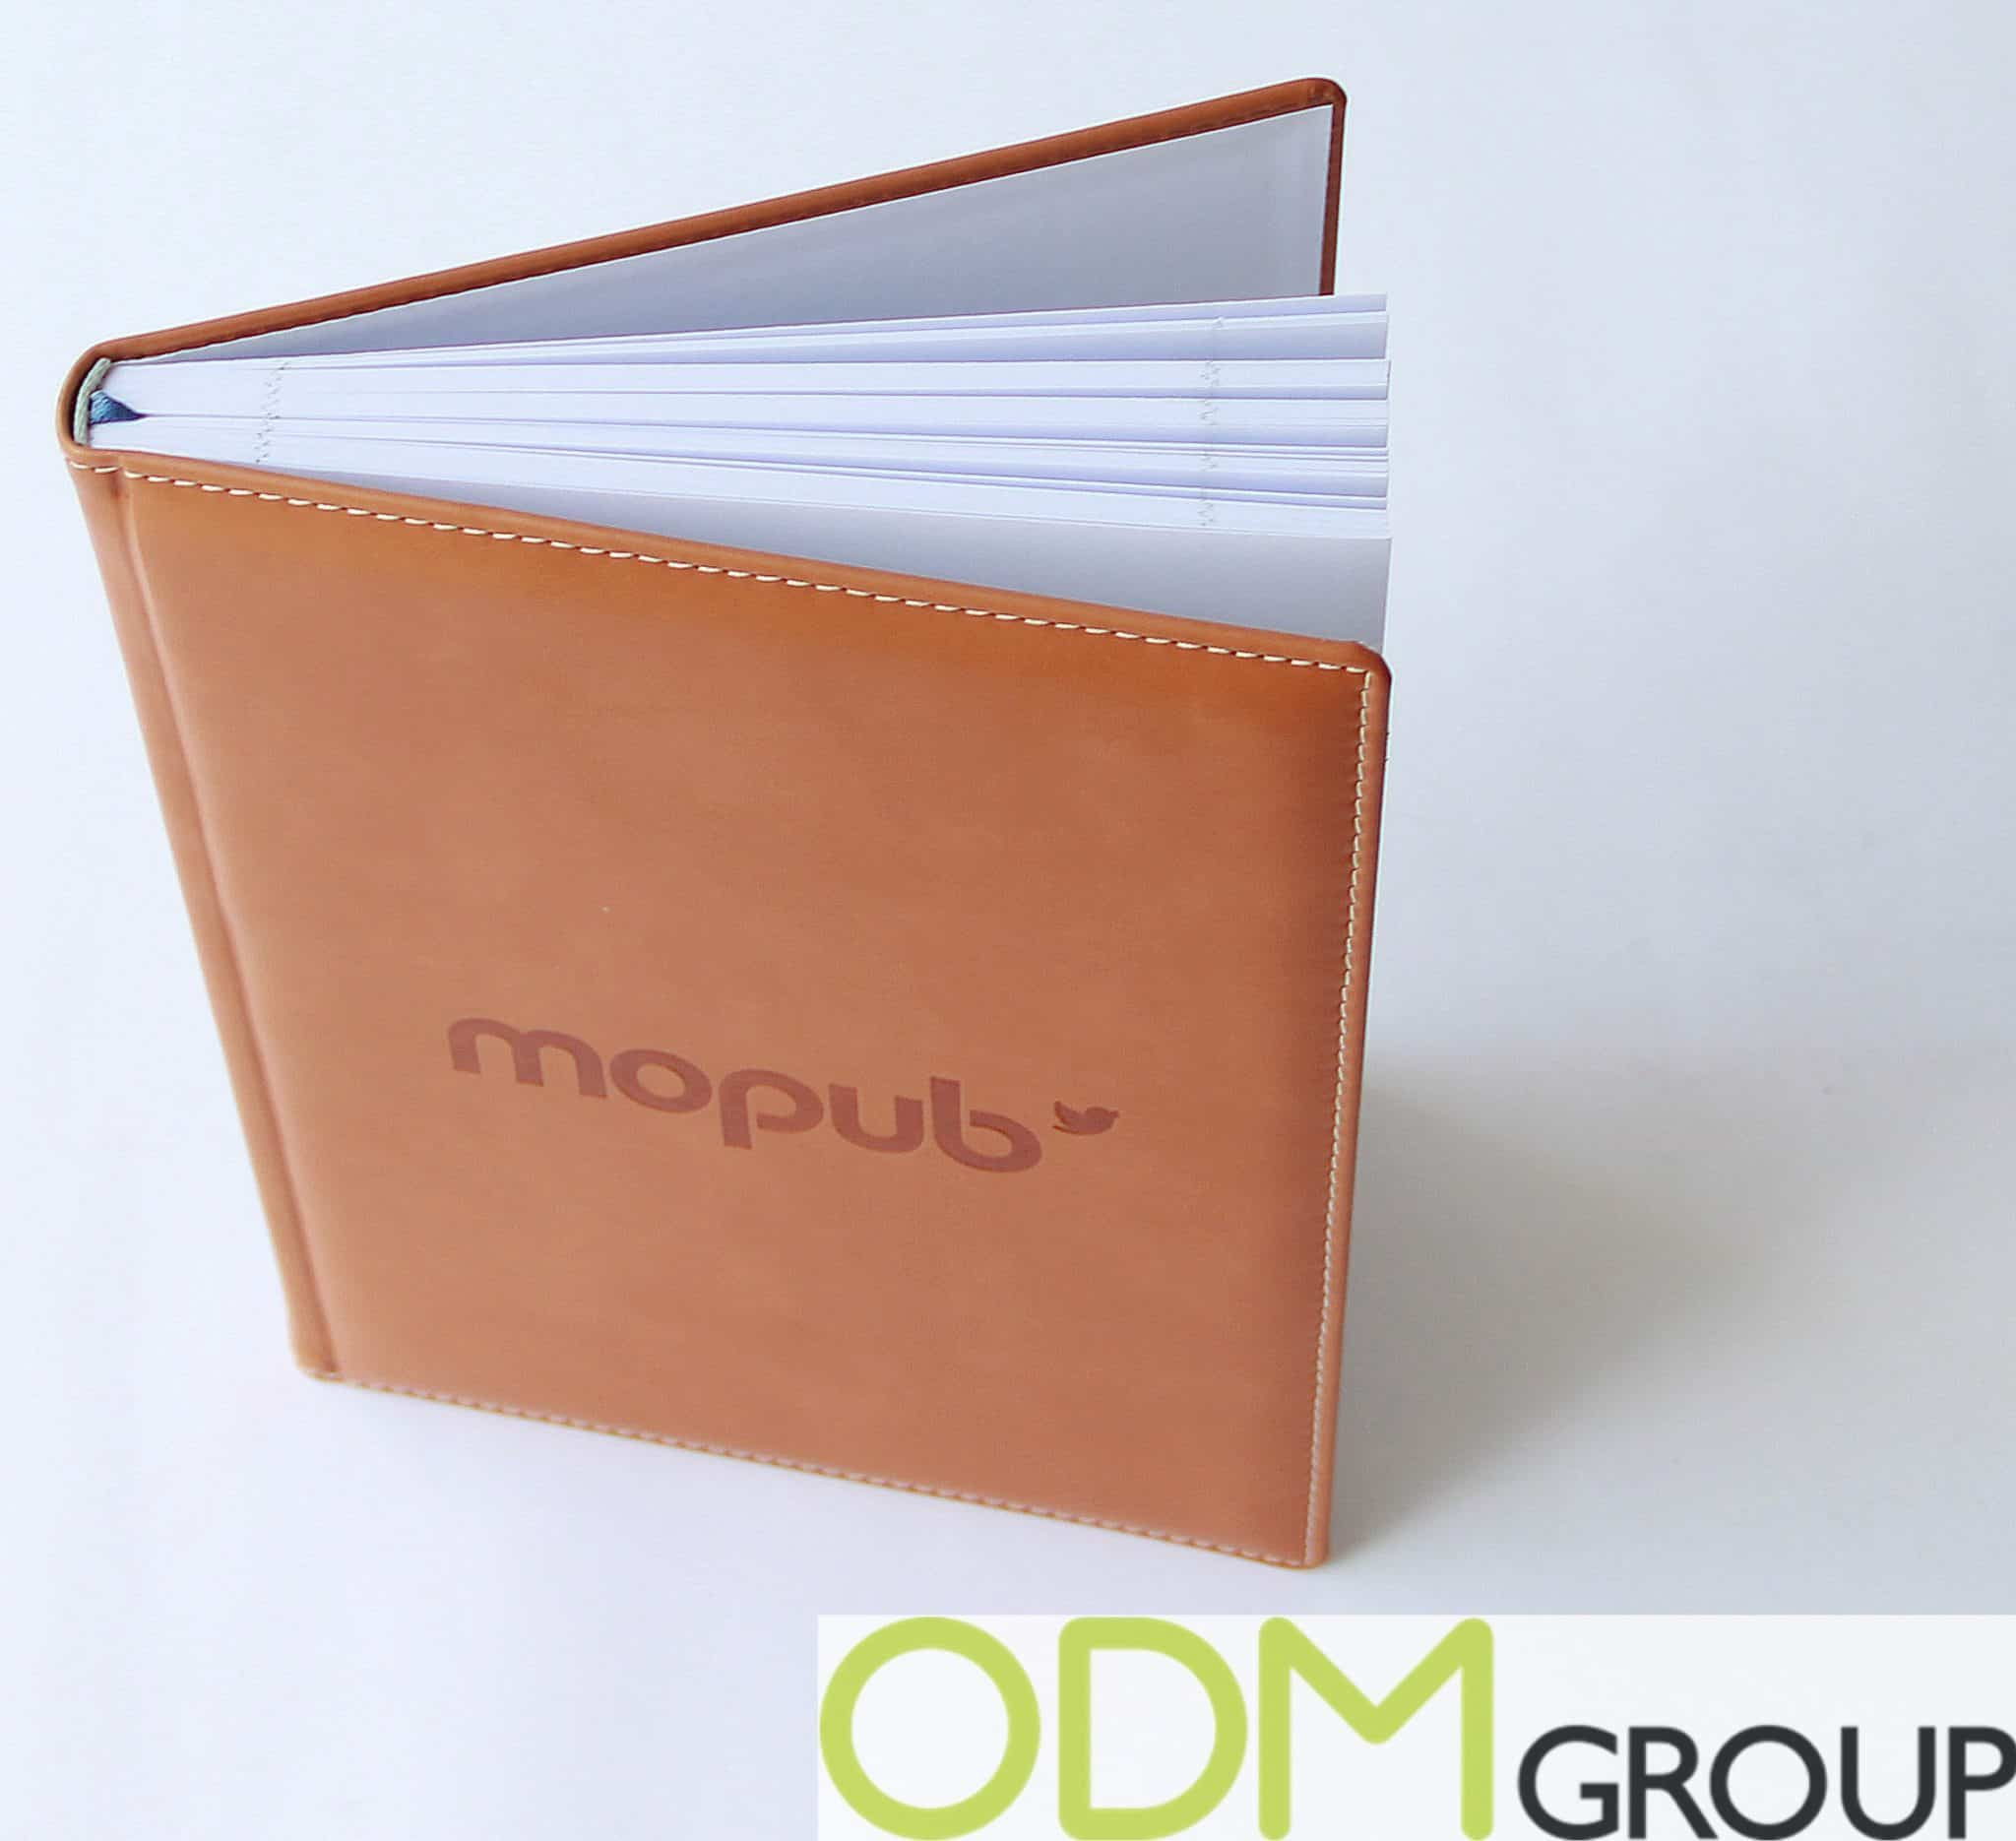 High-end Branded PU Notebook offered by Mopub